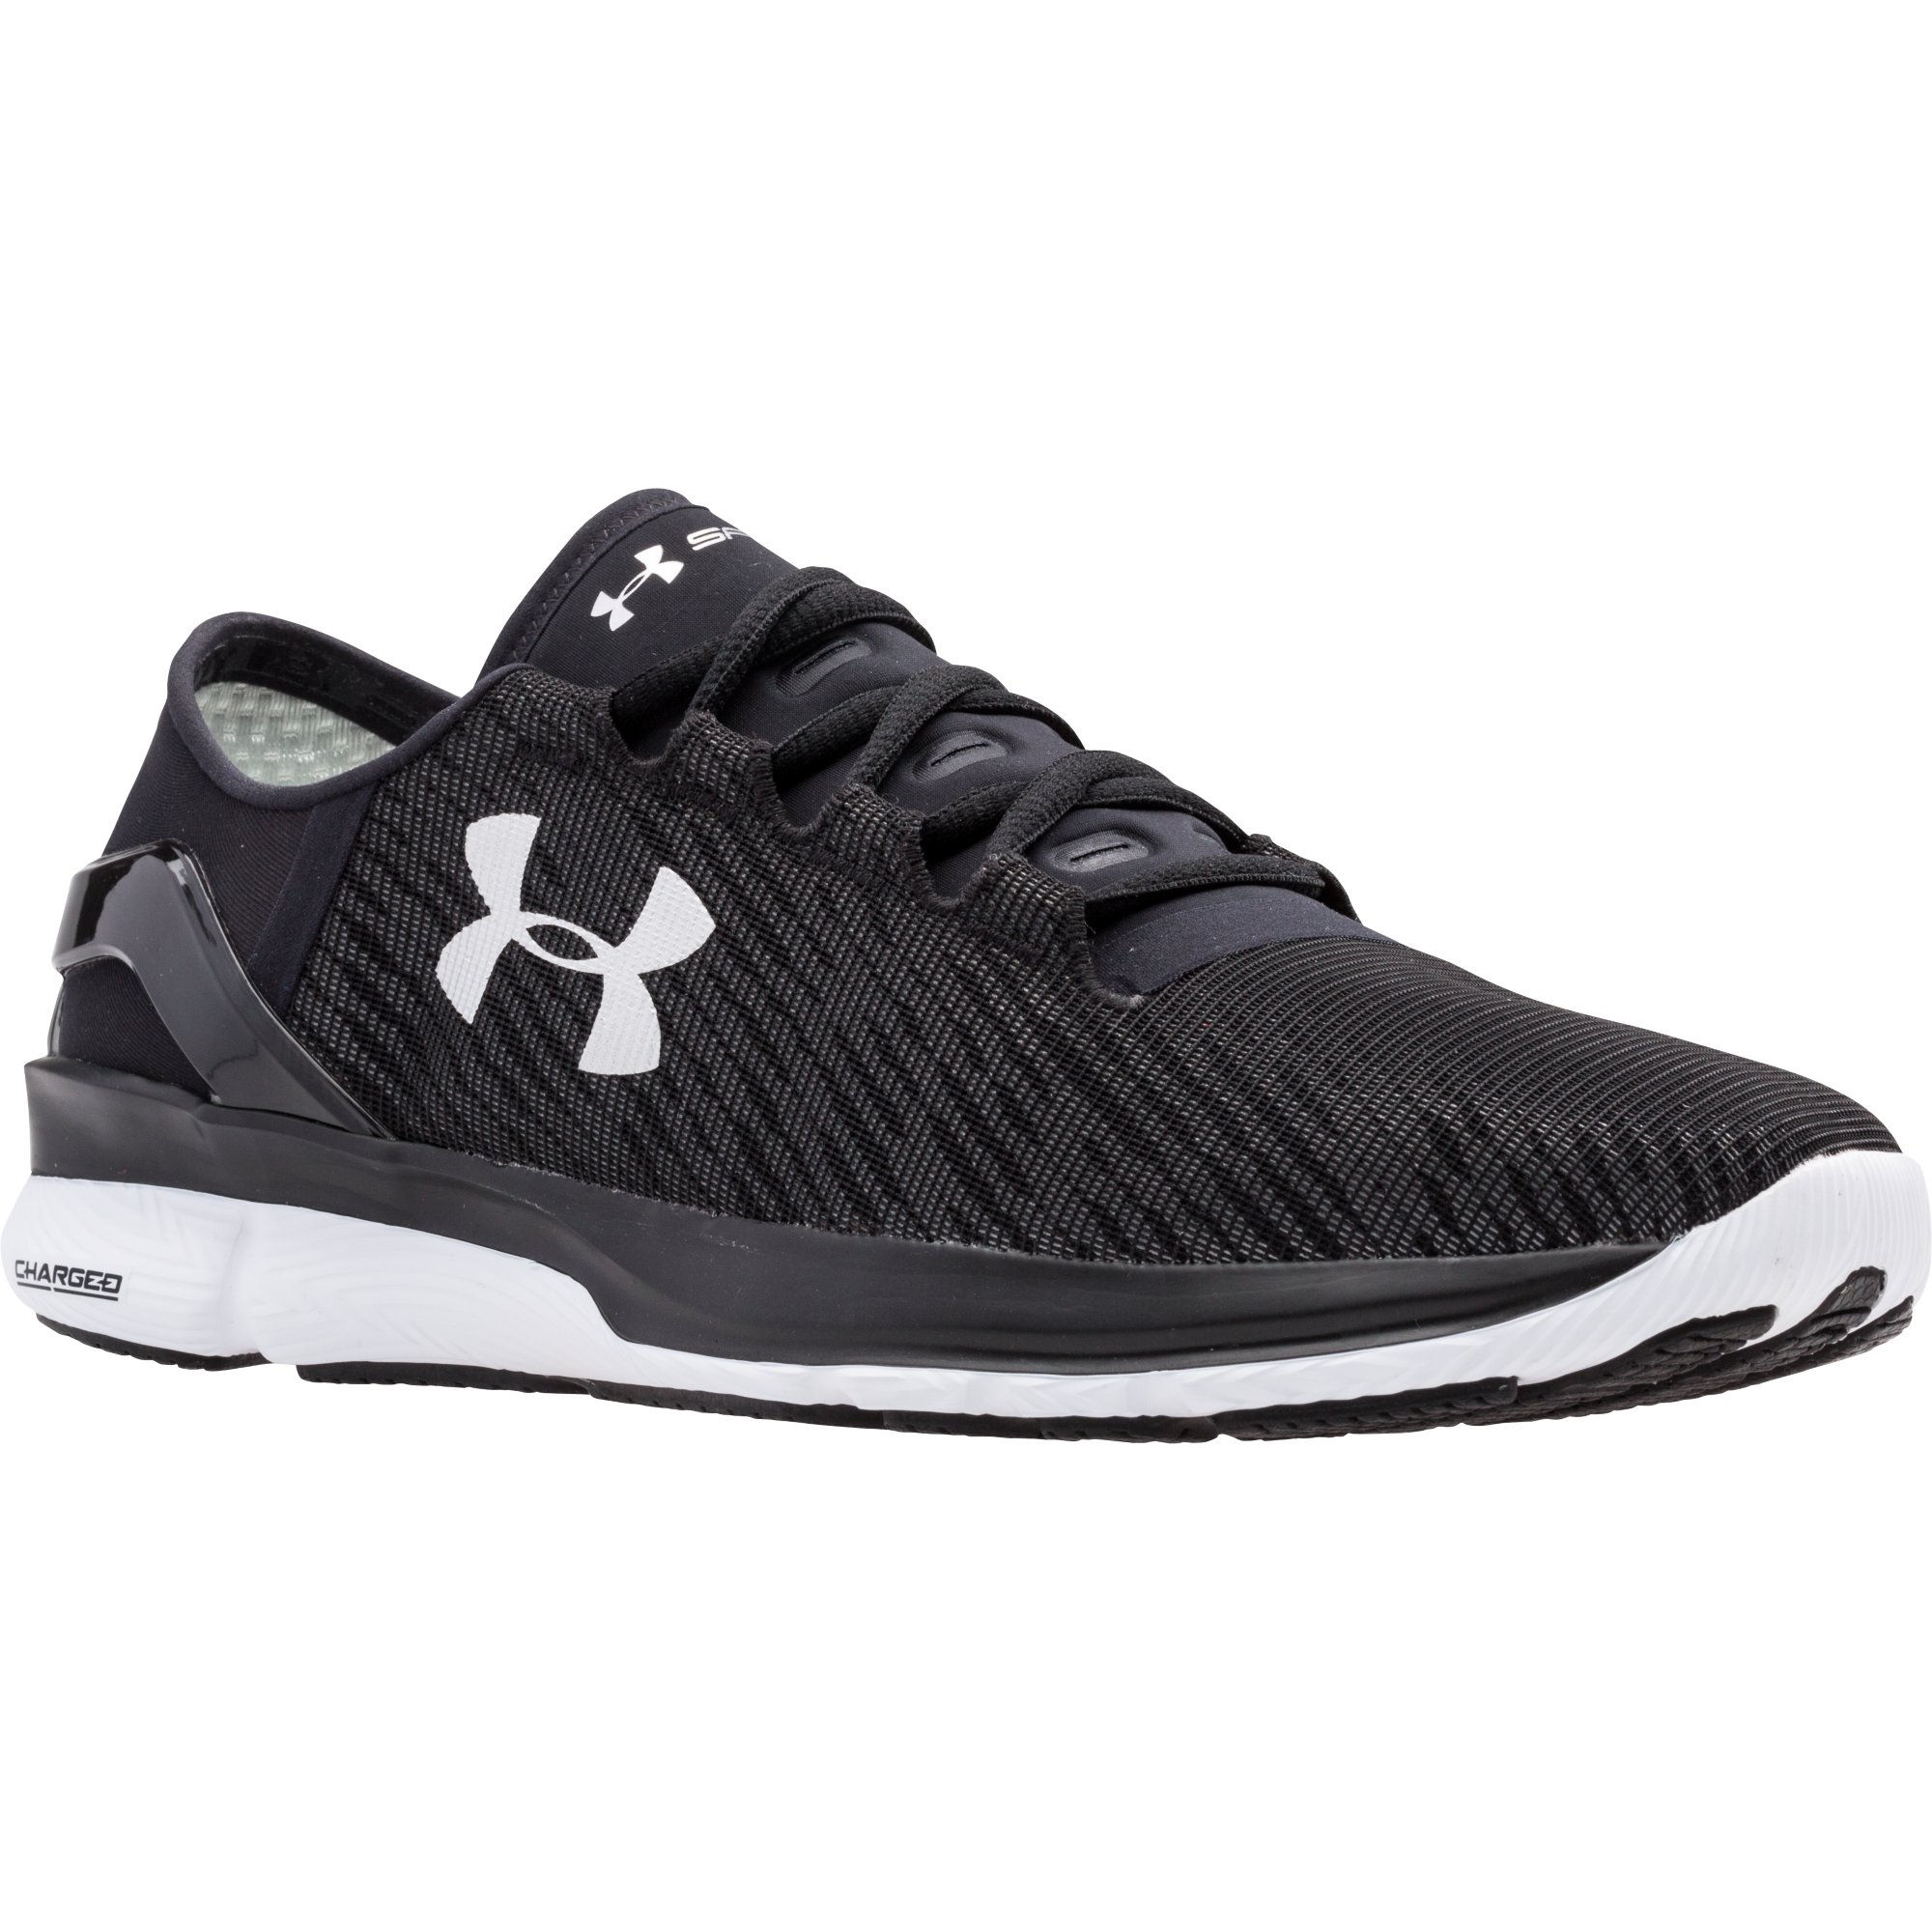 under armour running shoes black and white. under armour speedform turbulence reflective shoes (ss16) running black and white